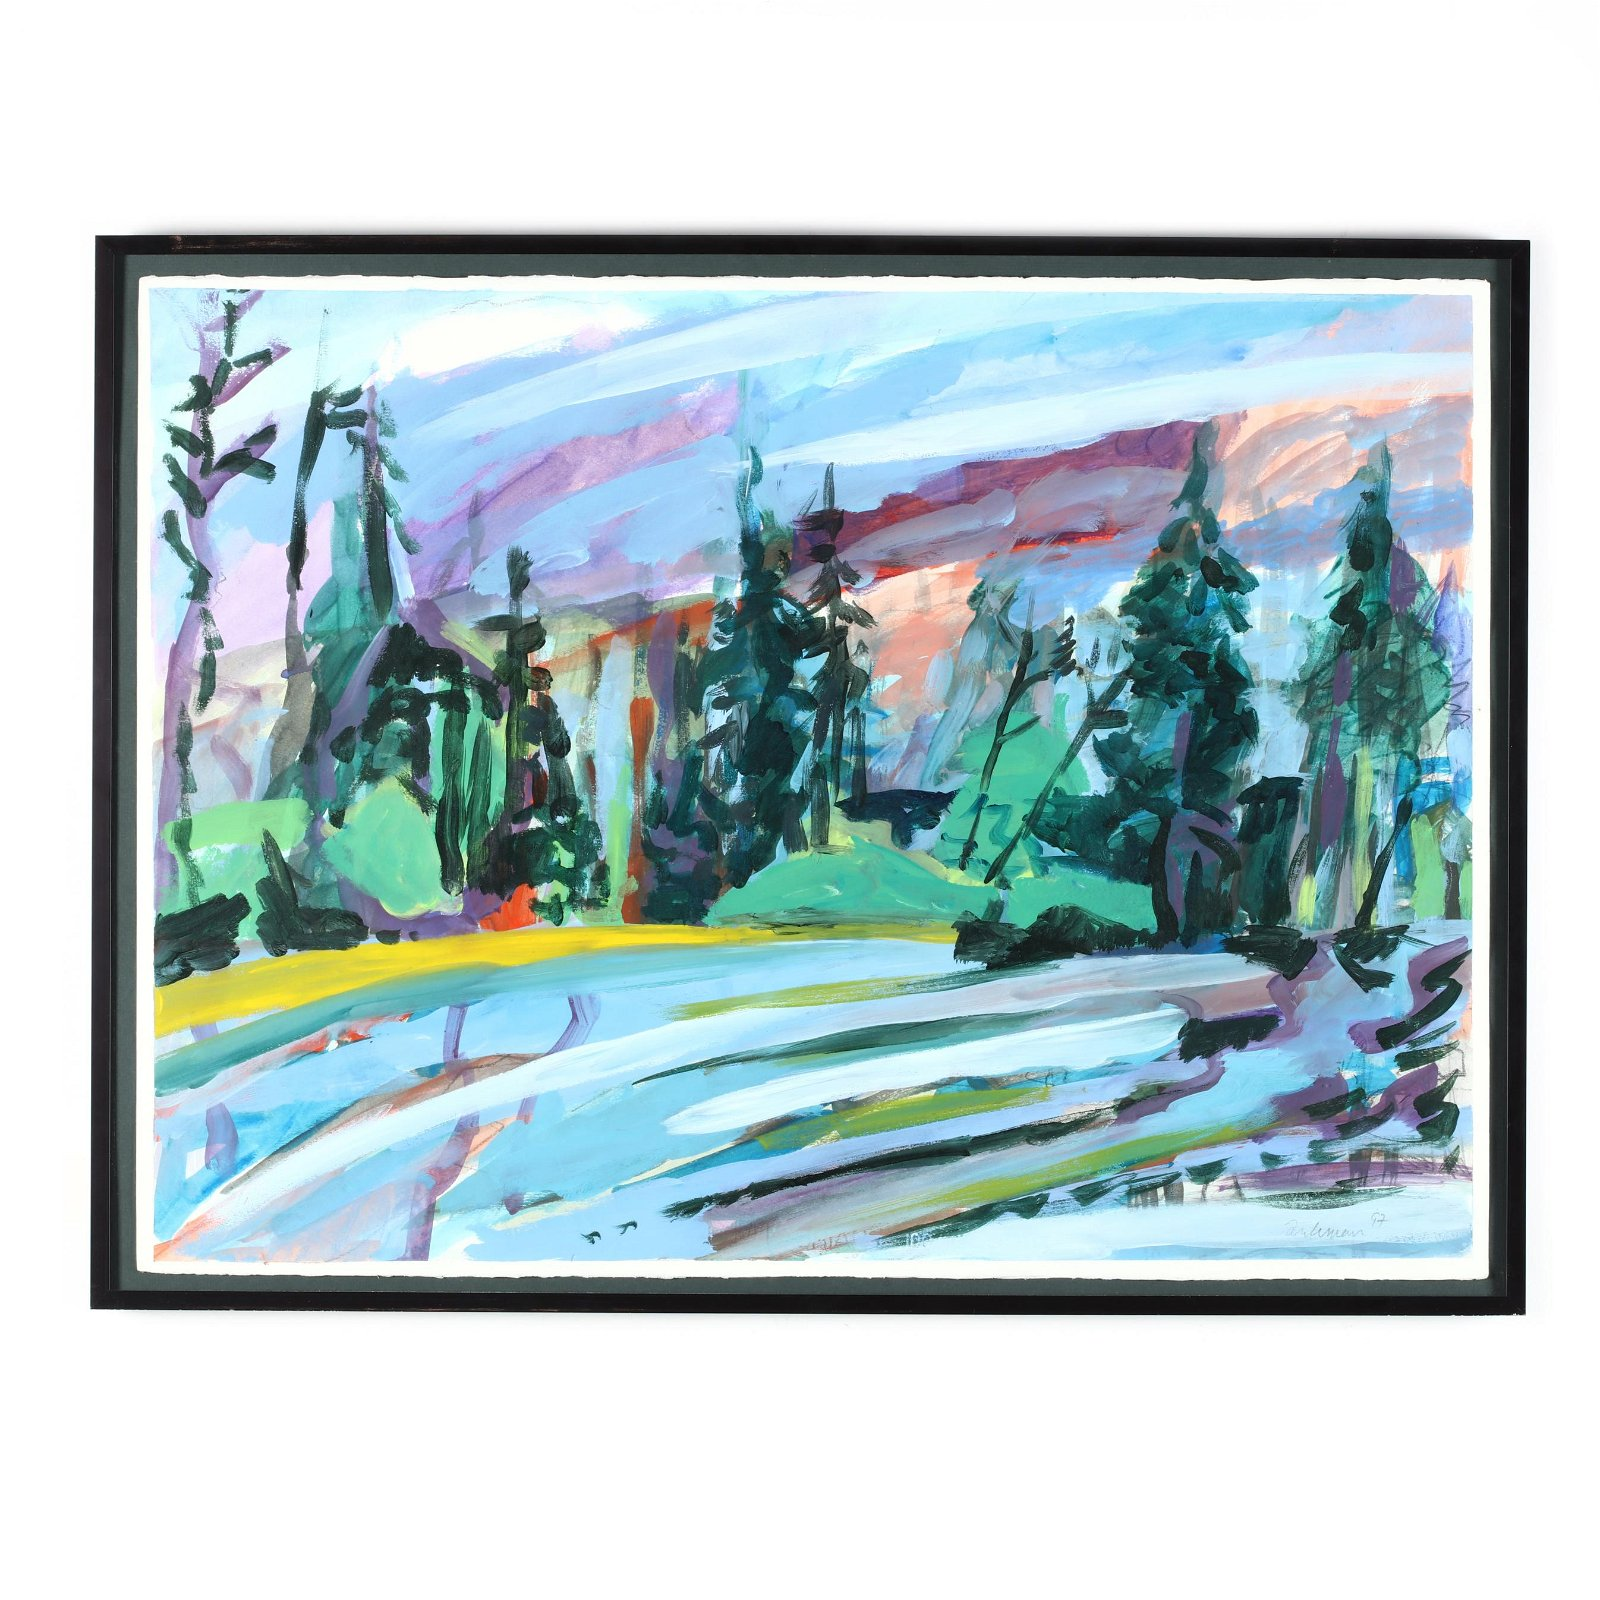 A Contemporary Landscape Painting (Maine)